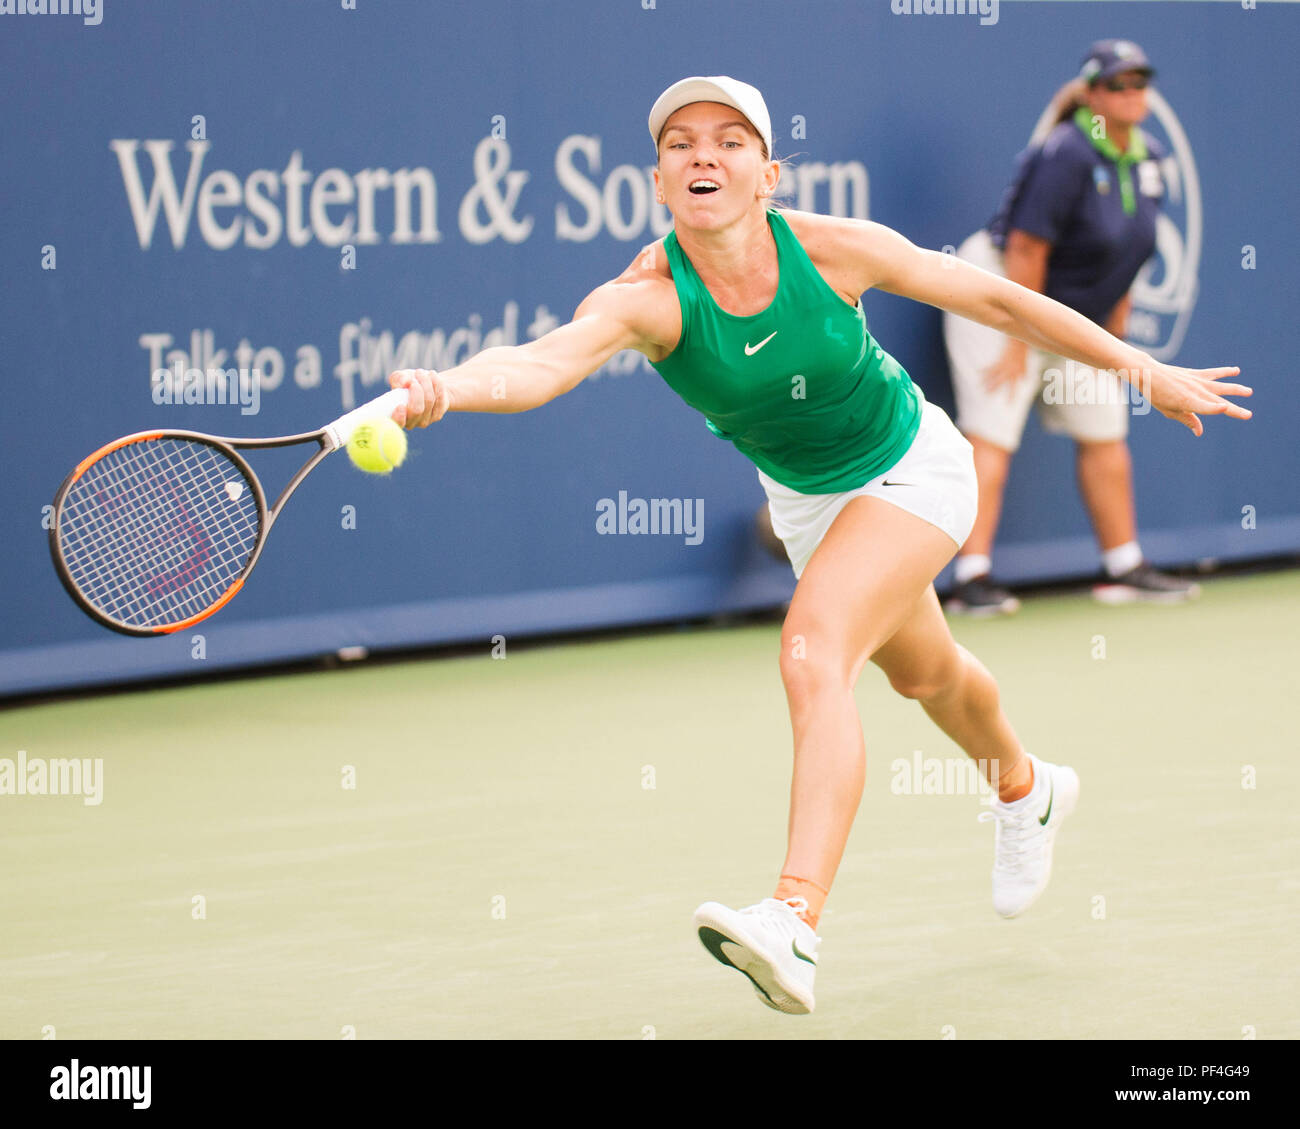 Ohio, USA. 18 August 2018.  Simona Halep (ROU) hits the ball back to Aryna Sabalenka (BLR) at the Western Southern Open in Mason, Ohio, USA. Brent Clark/Alamy Live News - Stock Image